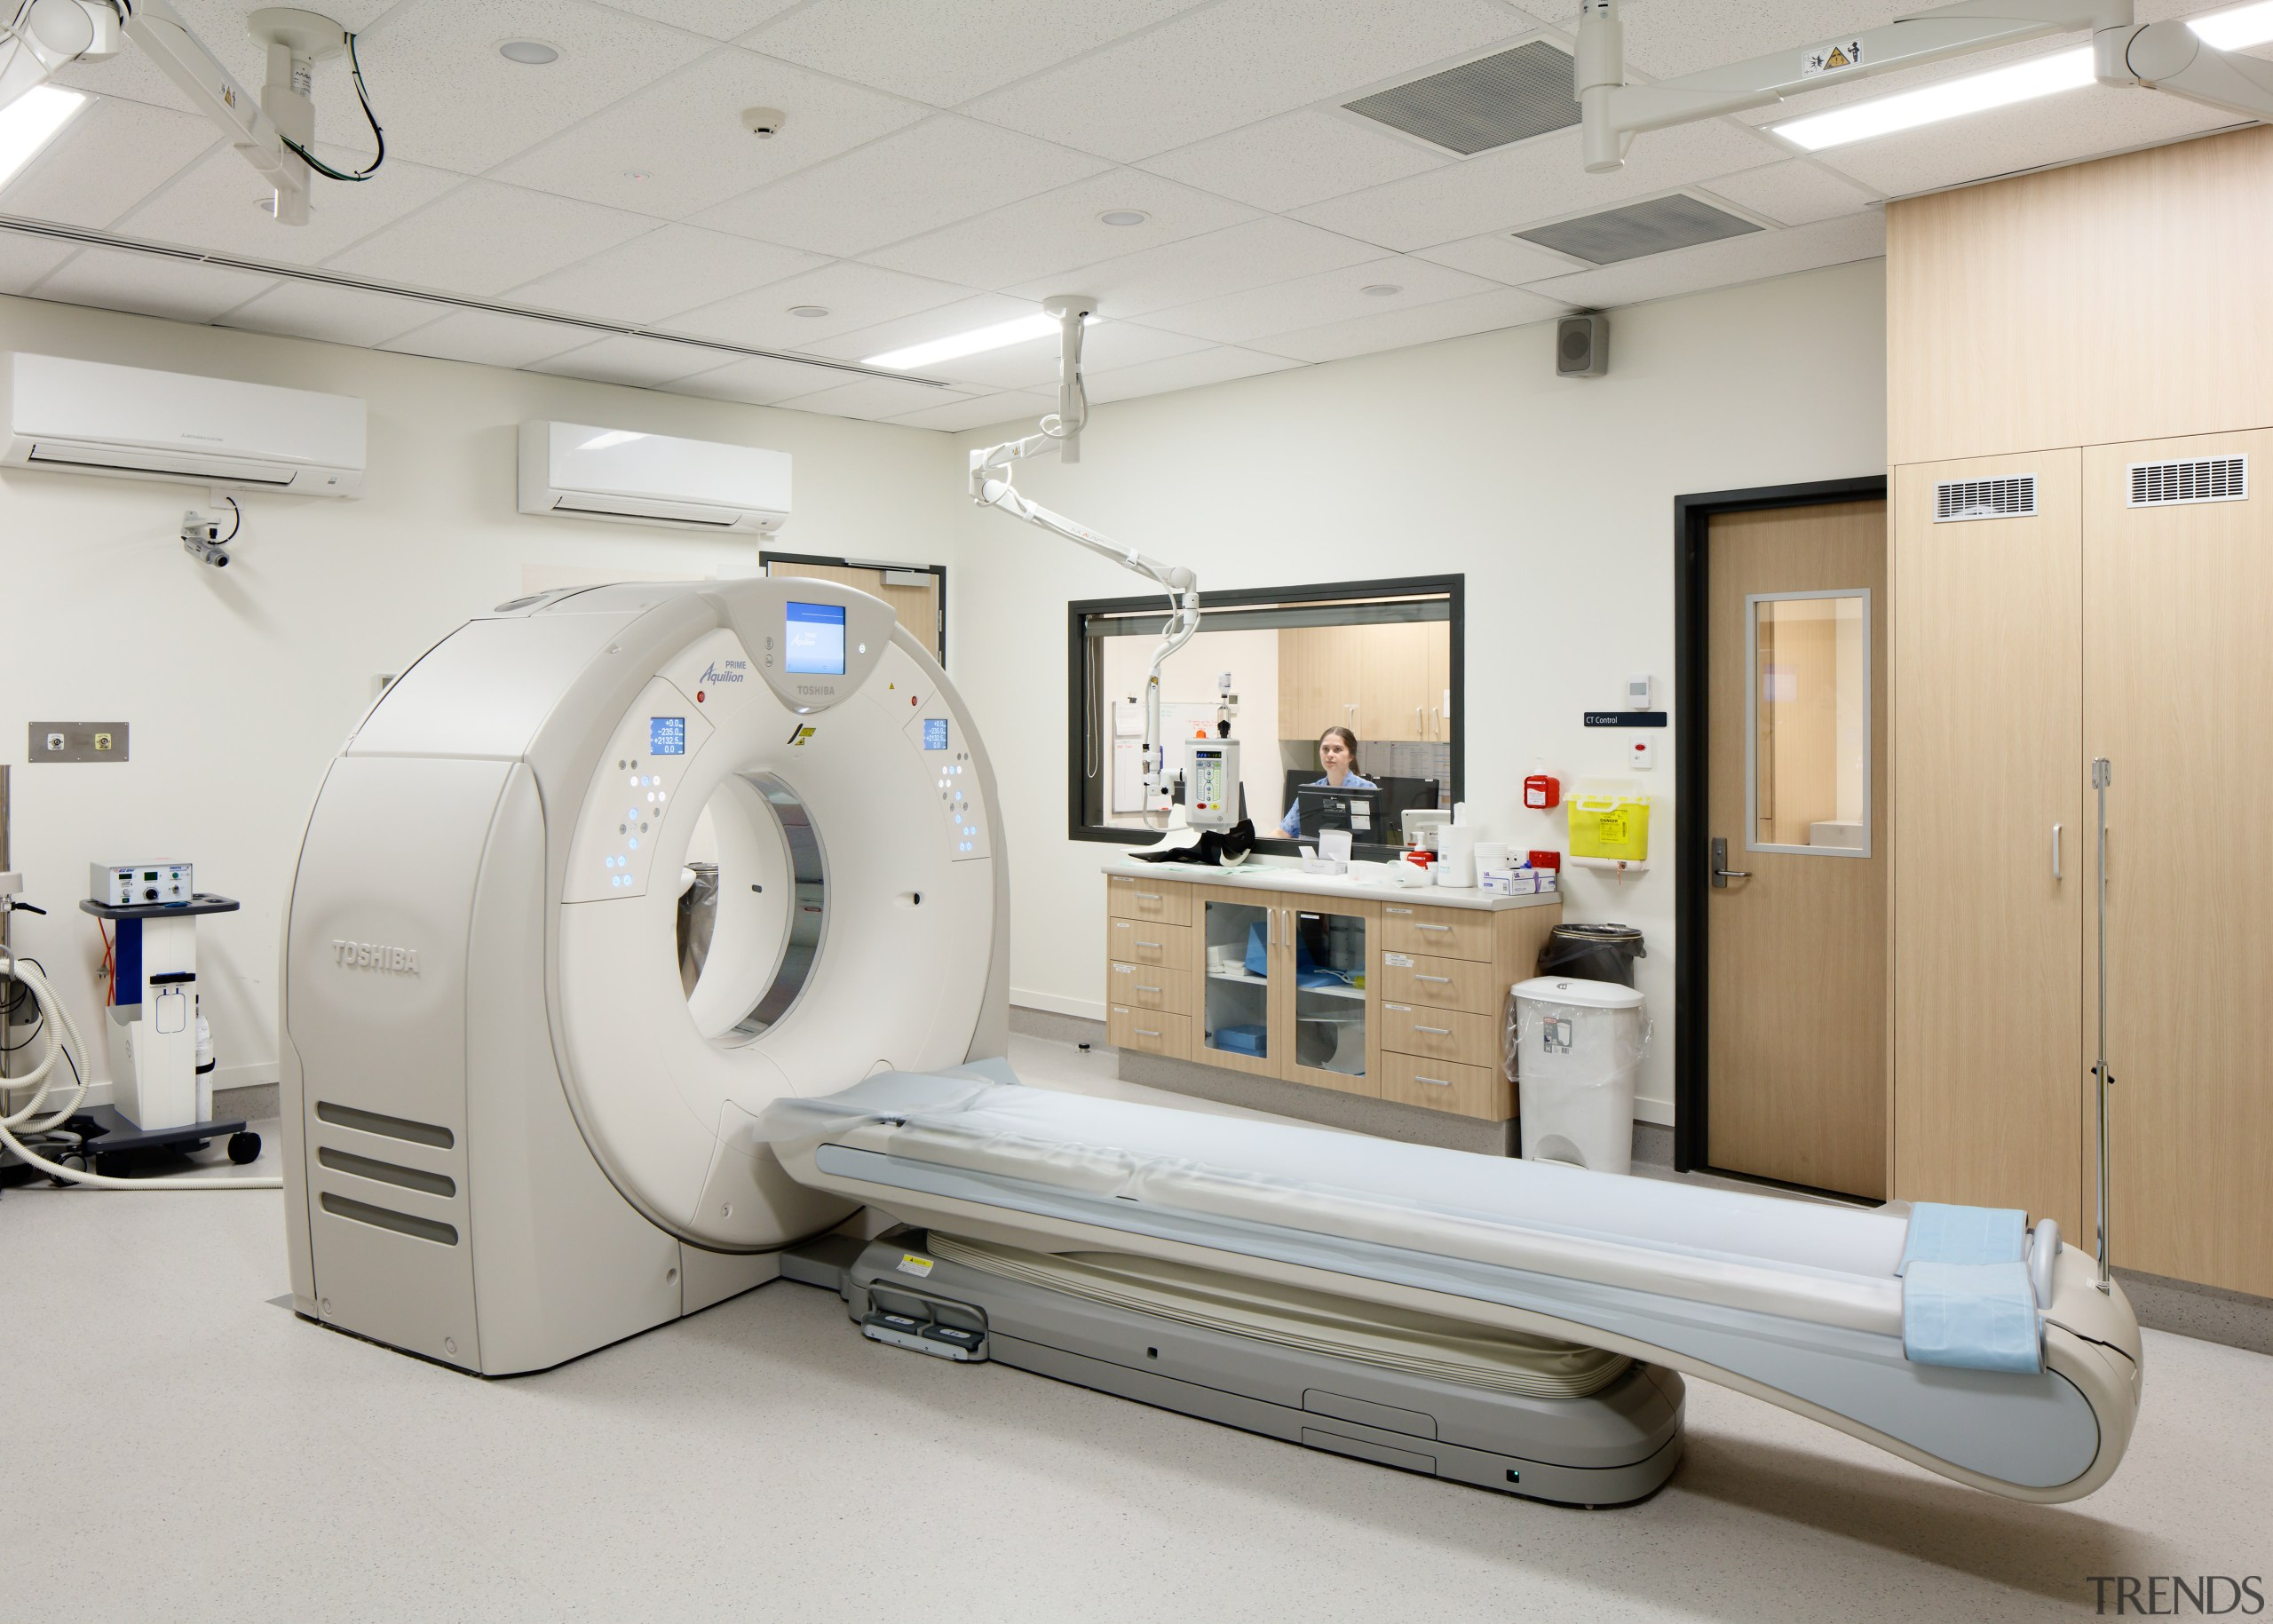 The Radiology Department is on the ground floor hospital, medical, medical equipment, product, product design, service, gray, white